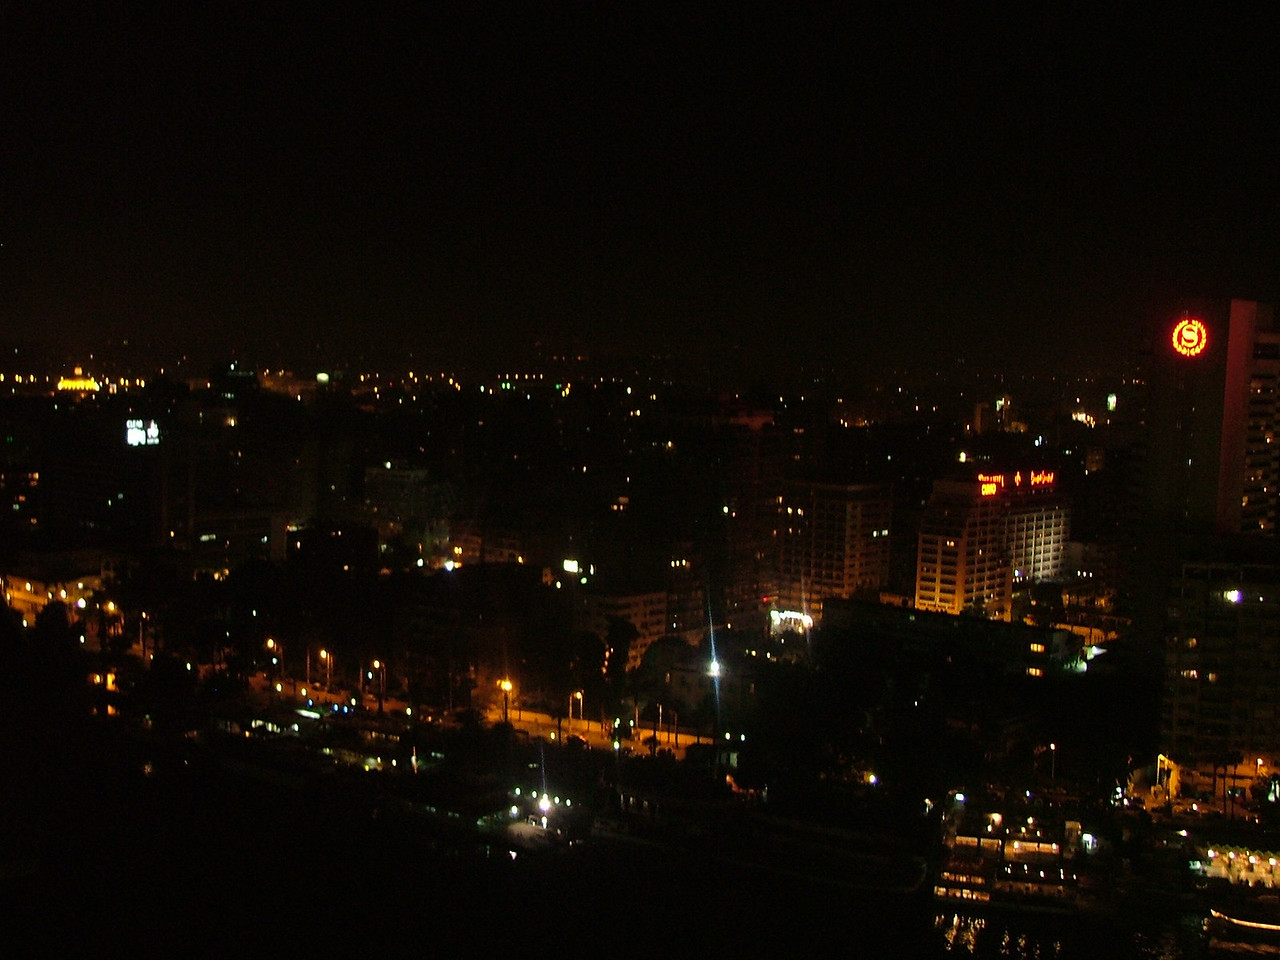 The view of Cairo from our hotel balcony.